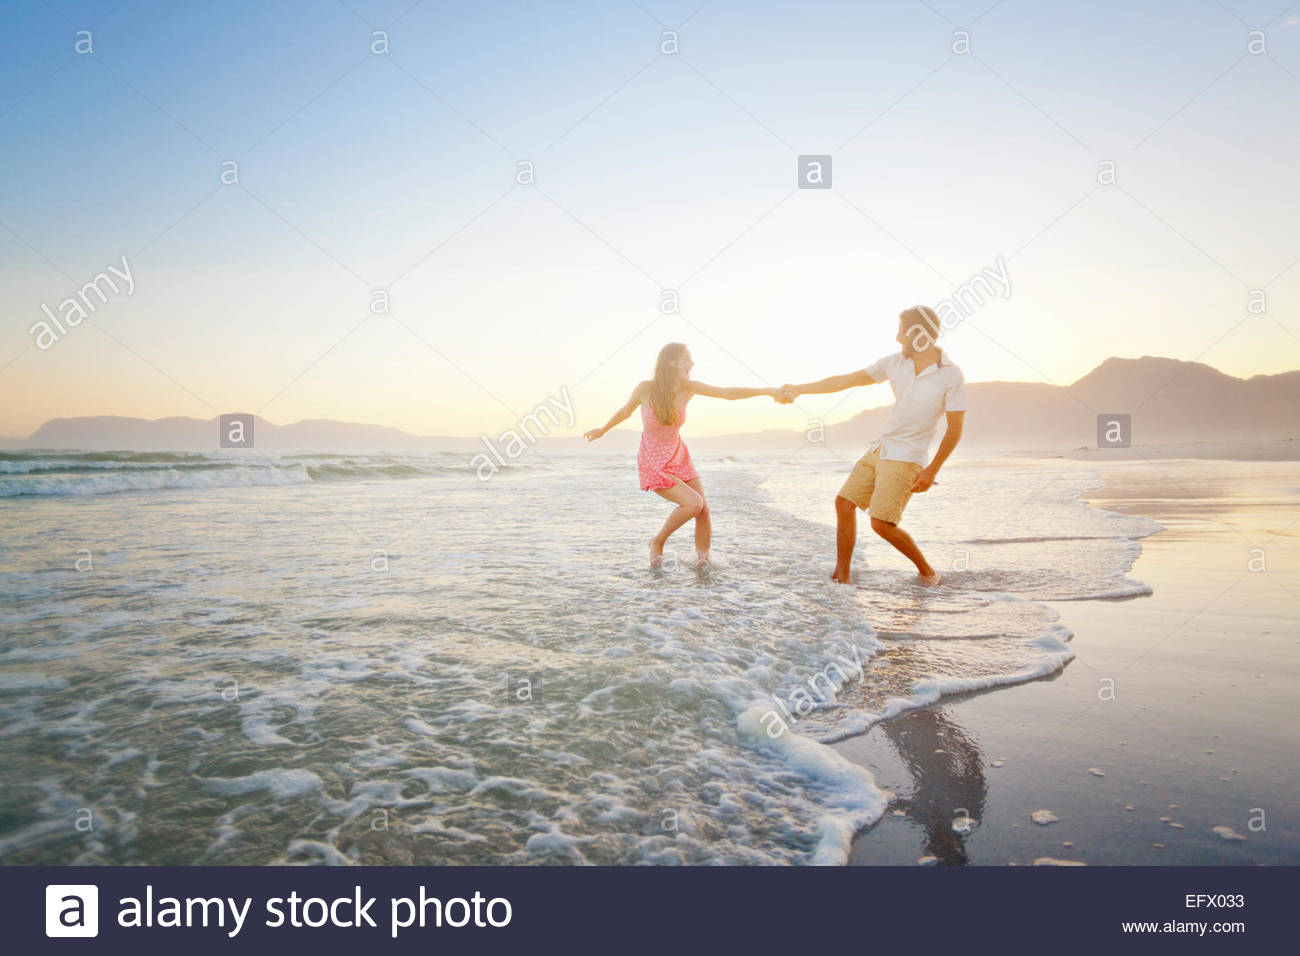 Couple, holding hands, playfully walking through waves on sunny beach - Stock Image